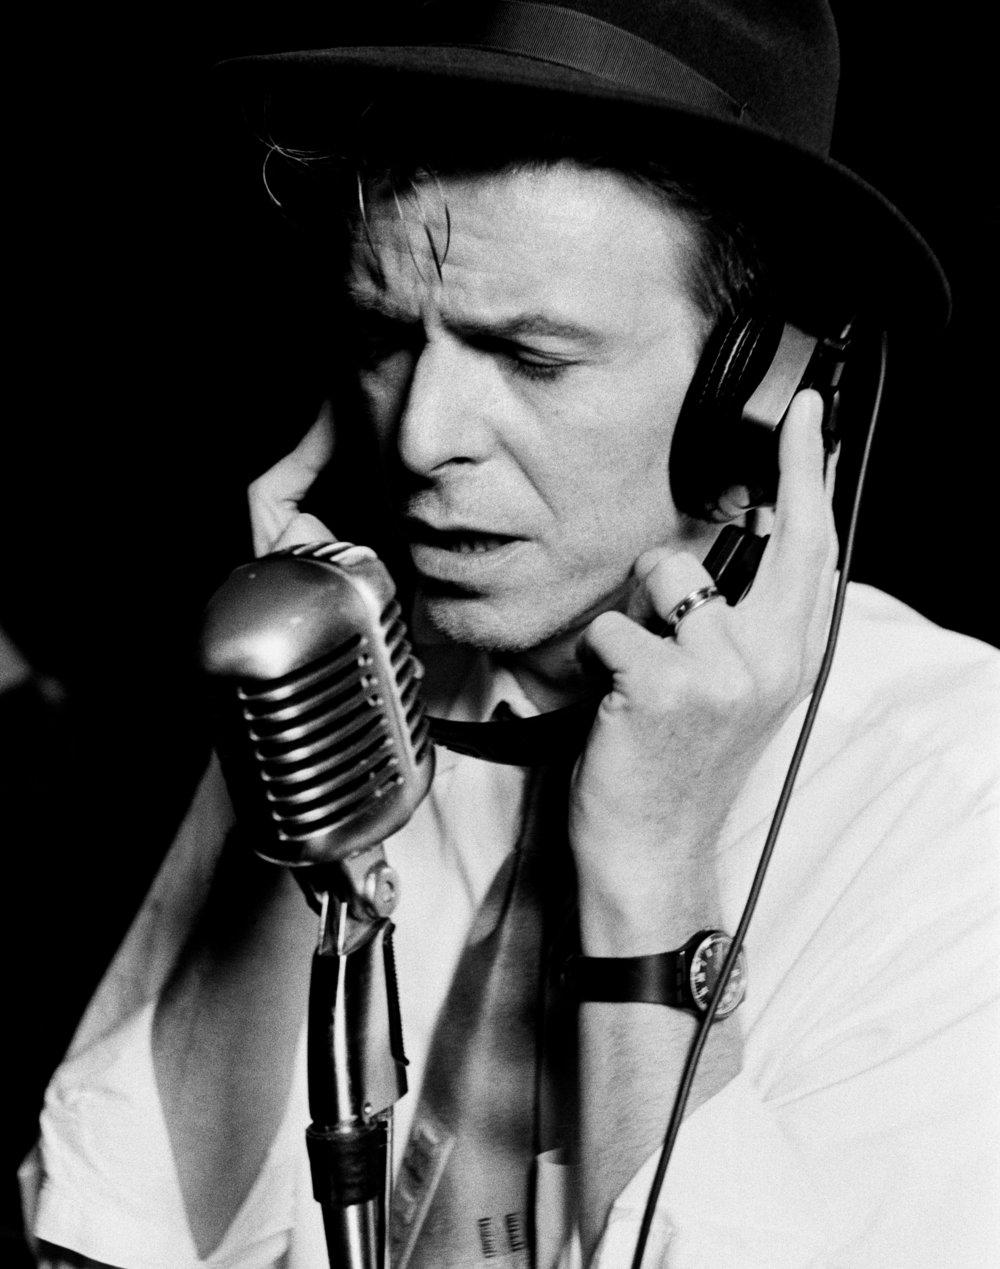 David Bowie, 1992. Photograph by Peter Gabriel. Courtesy of the photographer. © Peter Gabriel